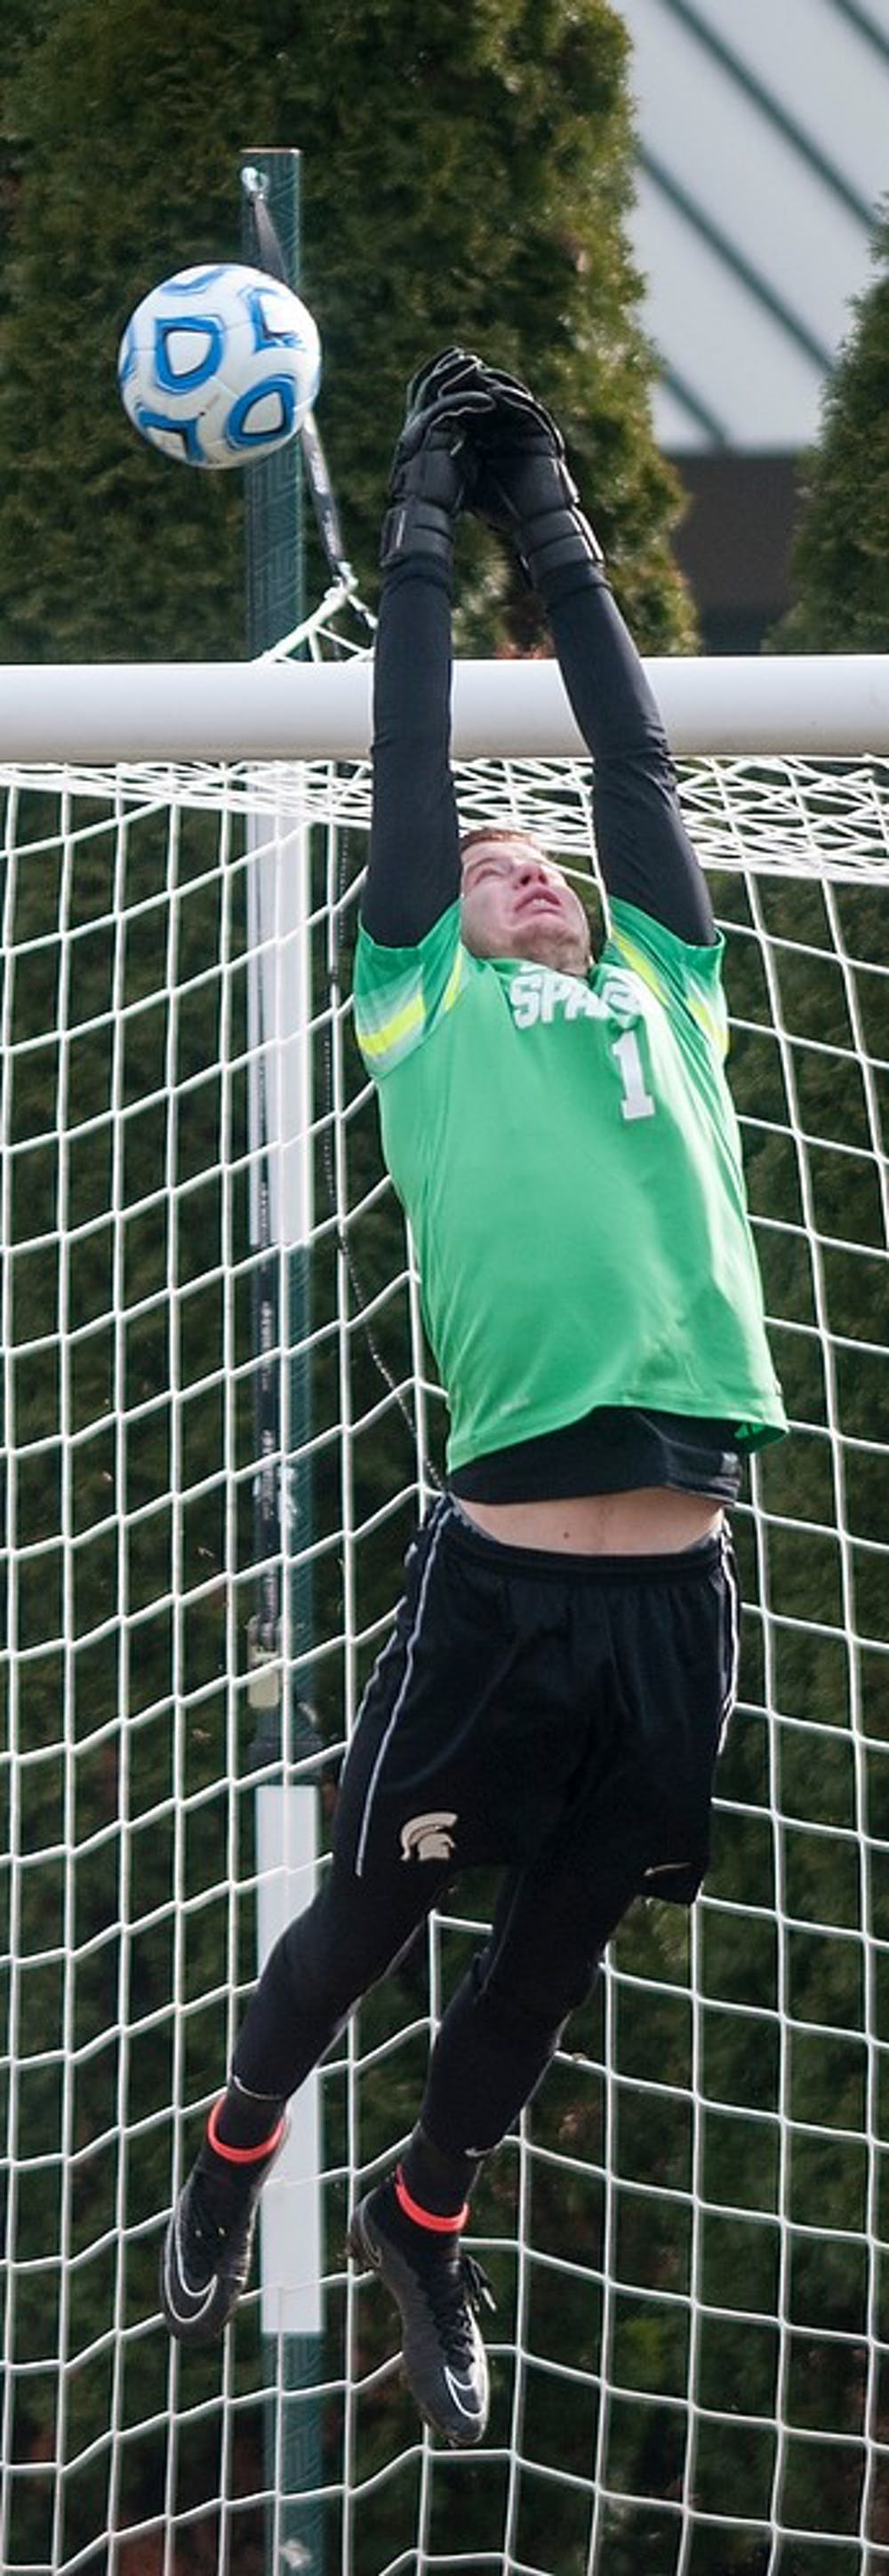 <p>Junior goalkeeper Zach Bennett  attempts to block the shot during the game against Providence College on Dec. 6, 2014, at DeMartin Stadium at Old College Field. The Spartans were defeated by the Friars, 2-3. Raymond Williams/The State News</p>